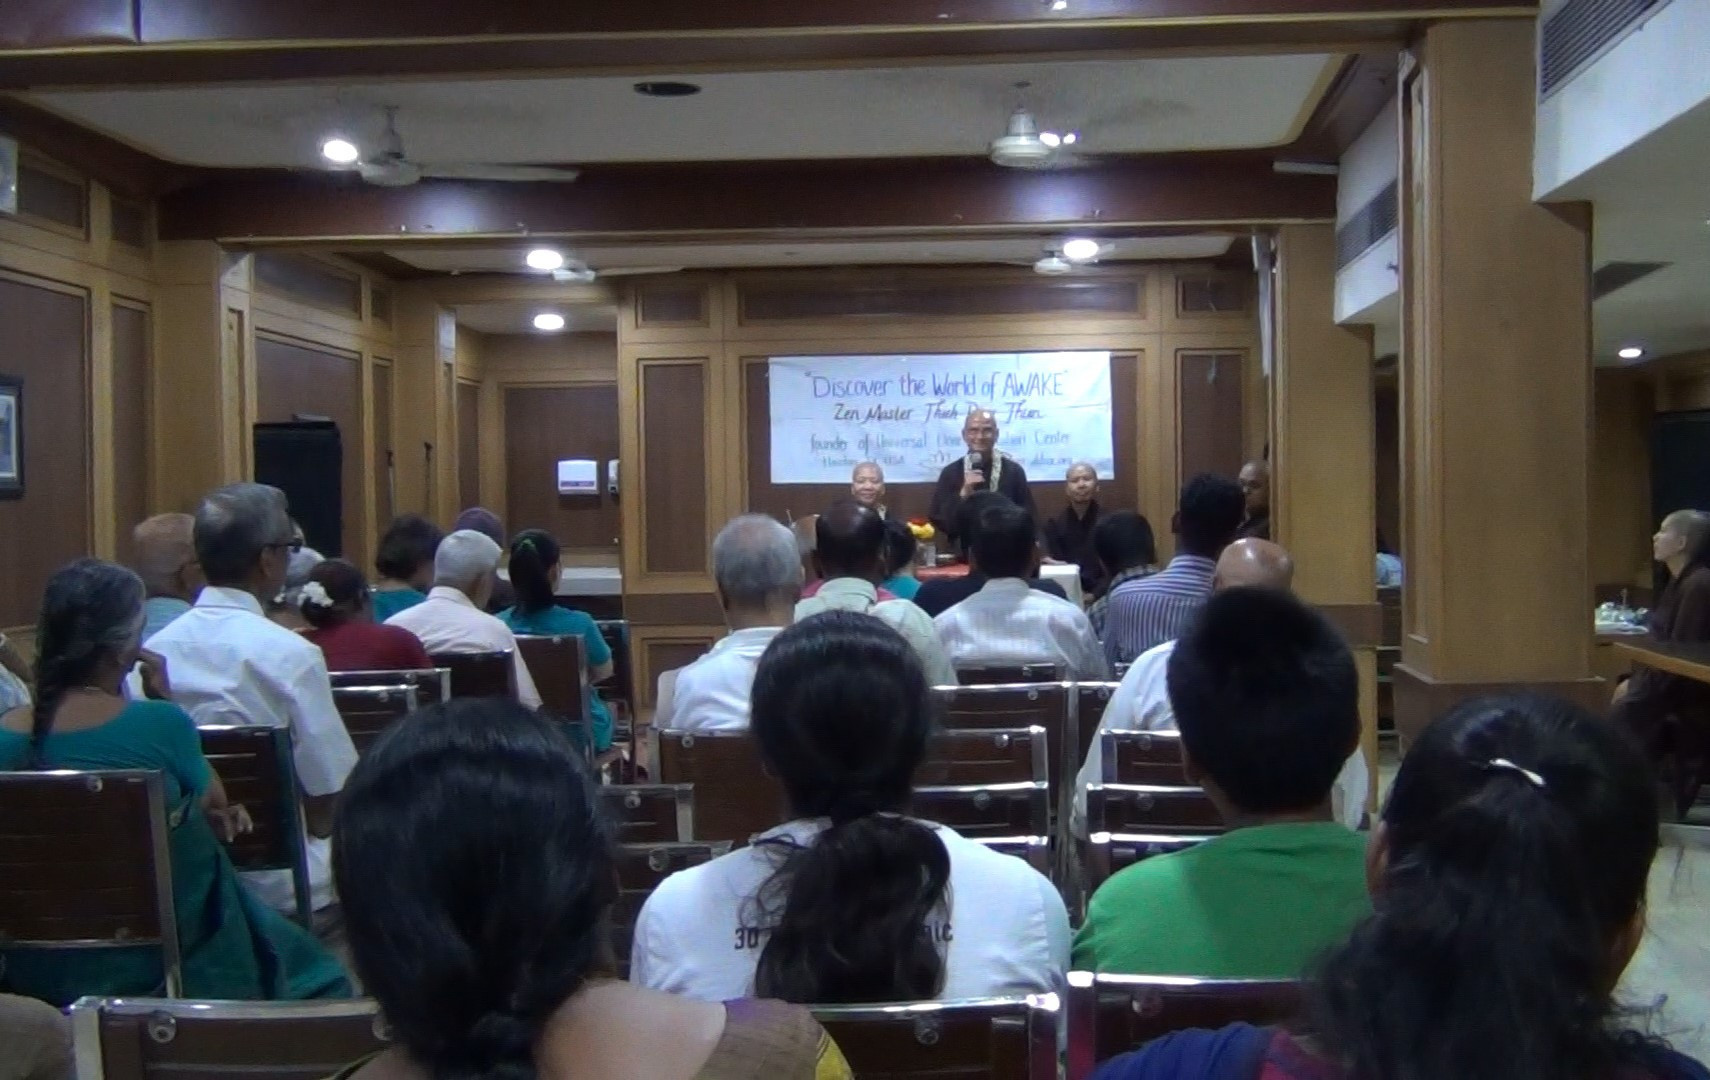 Thầy_at_Chennai_Dharma_talk_6.jpg